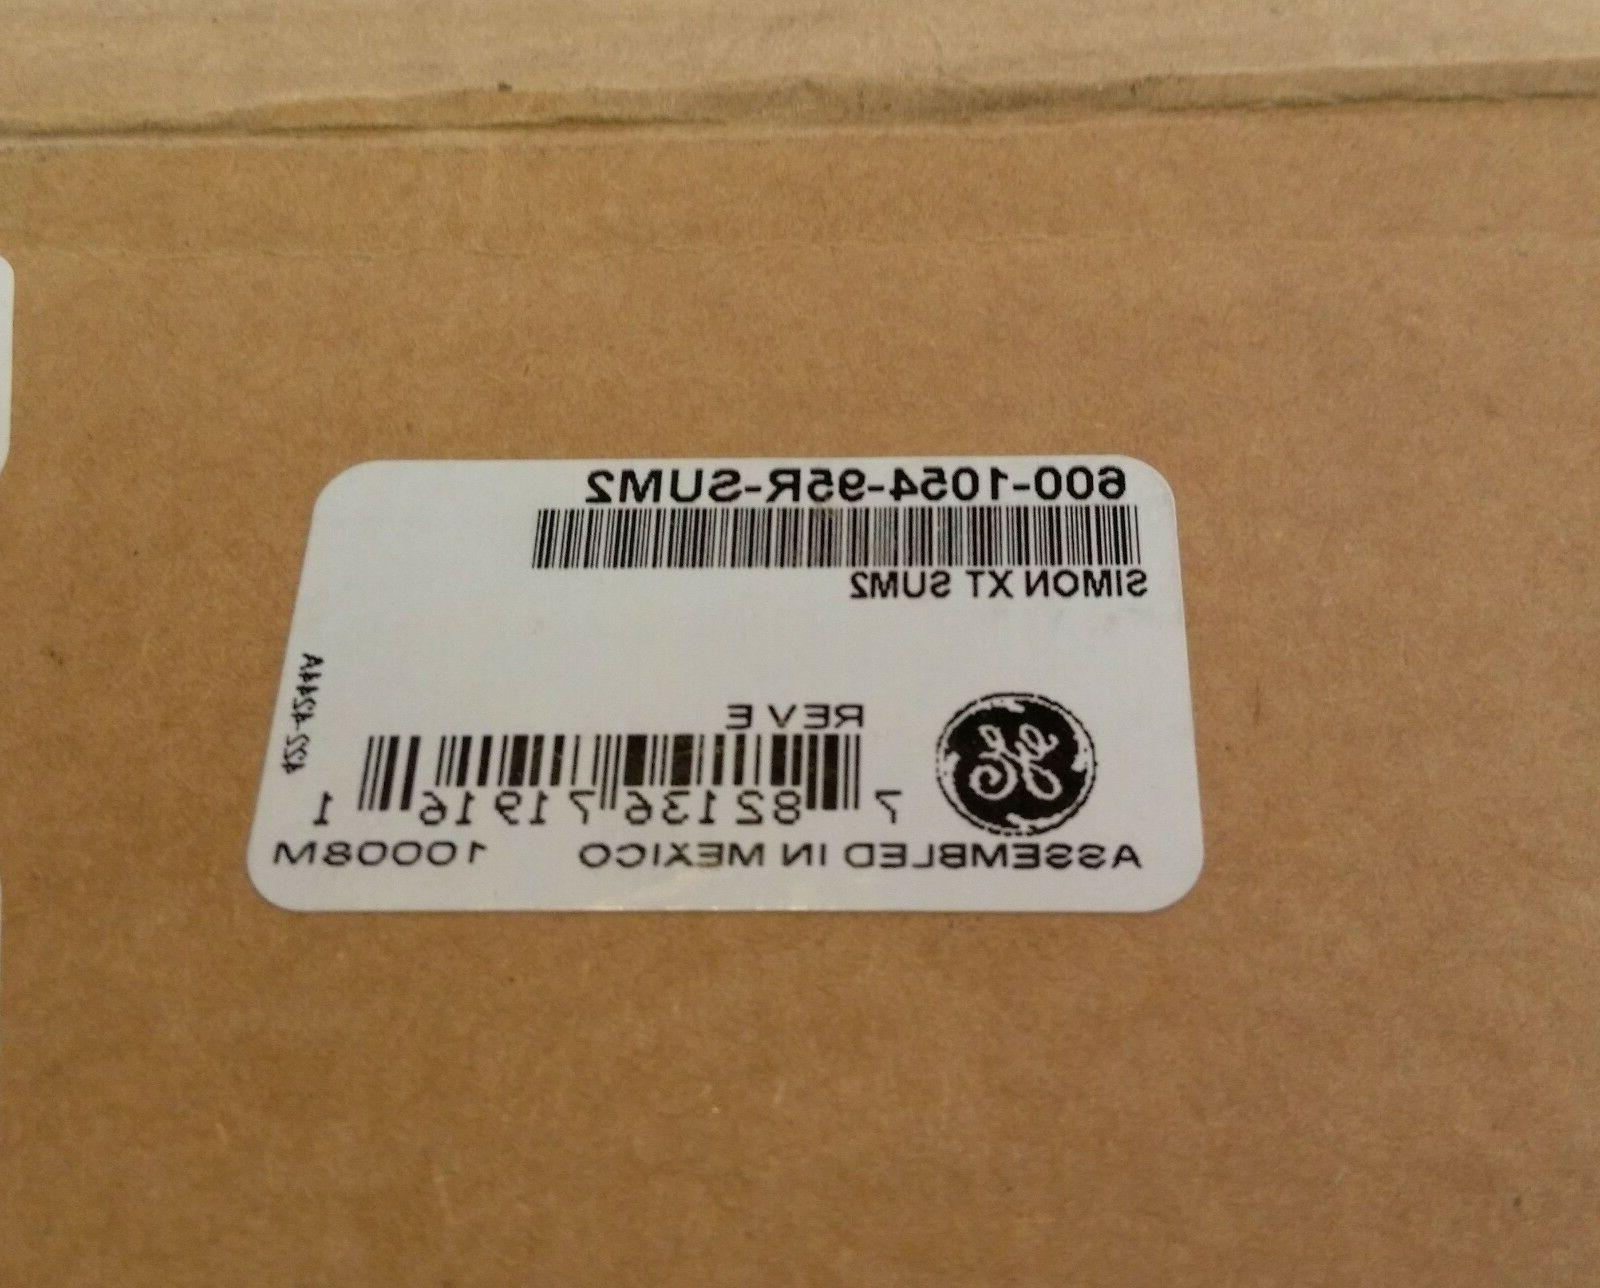 GE SIMON XT 600-1054-95R-SUM2 HOME SECURITY SYSTEM